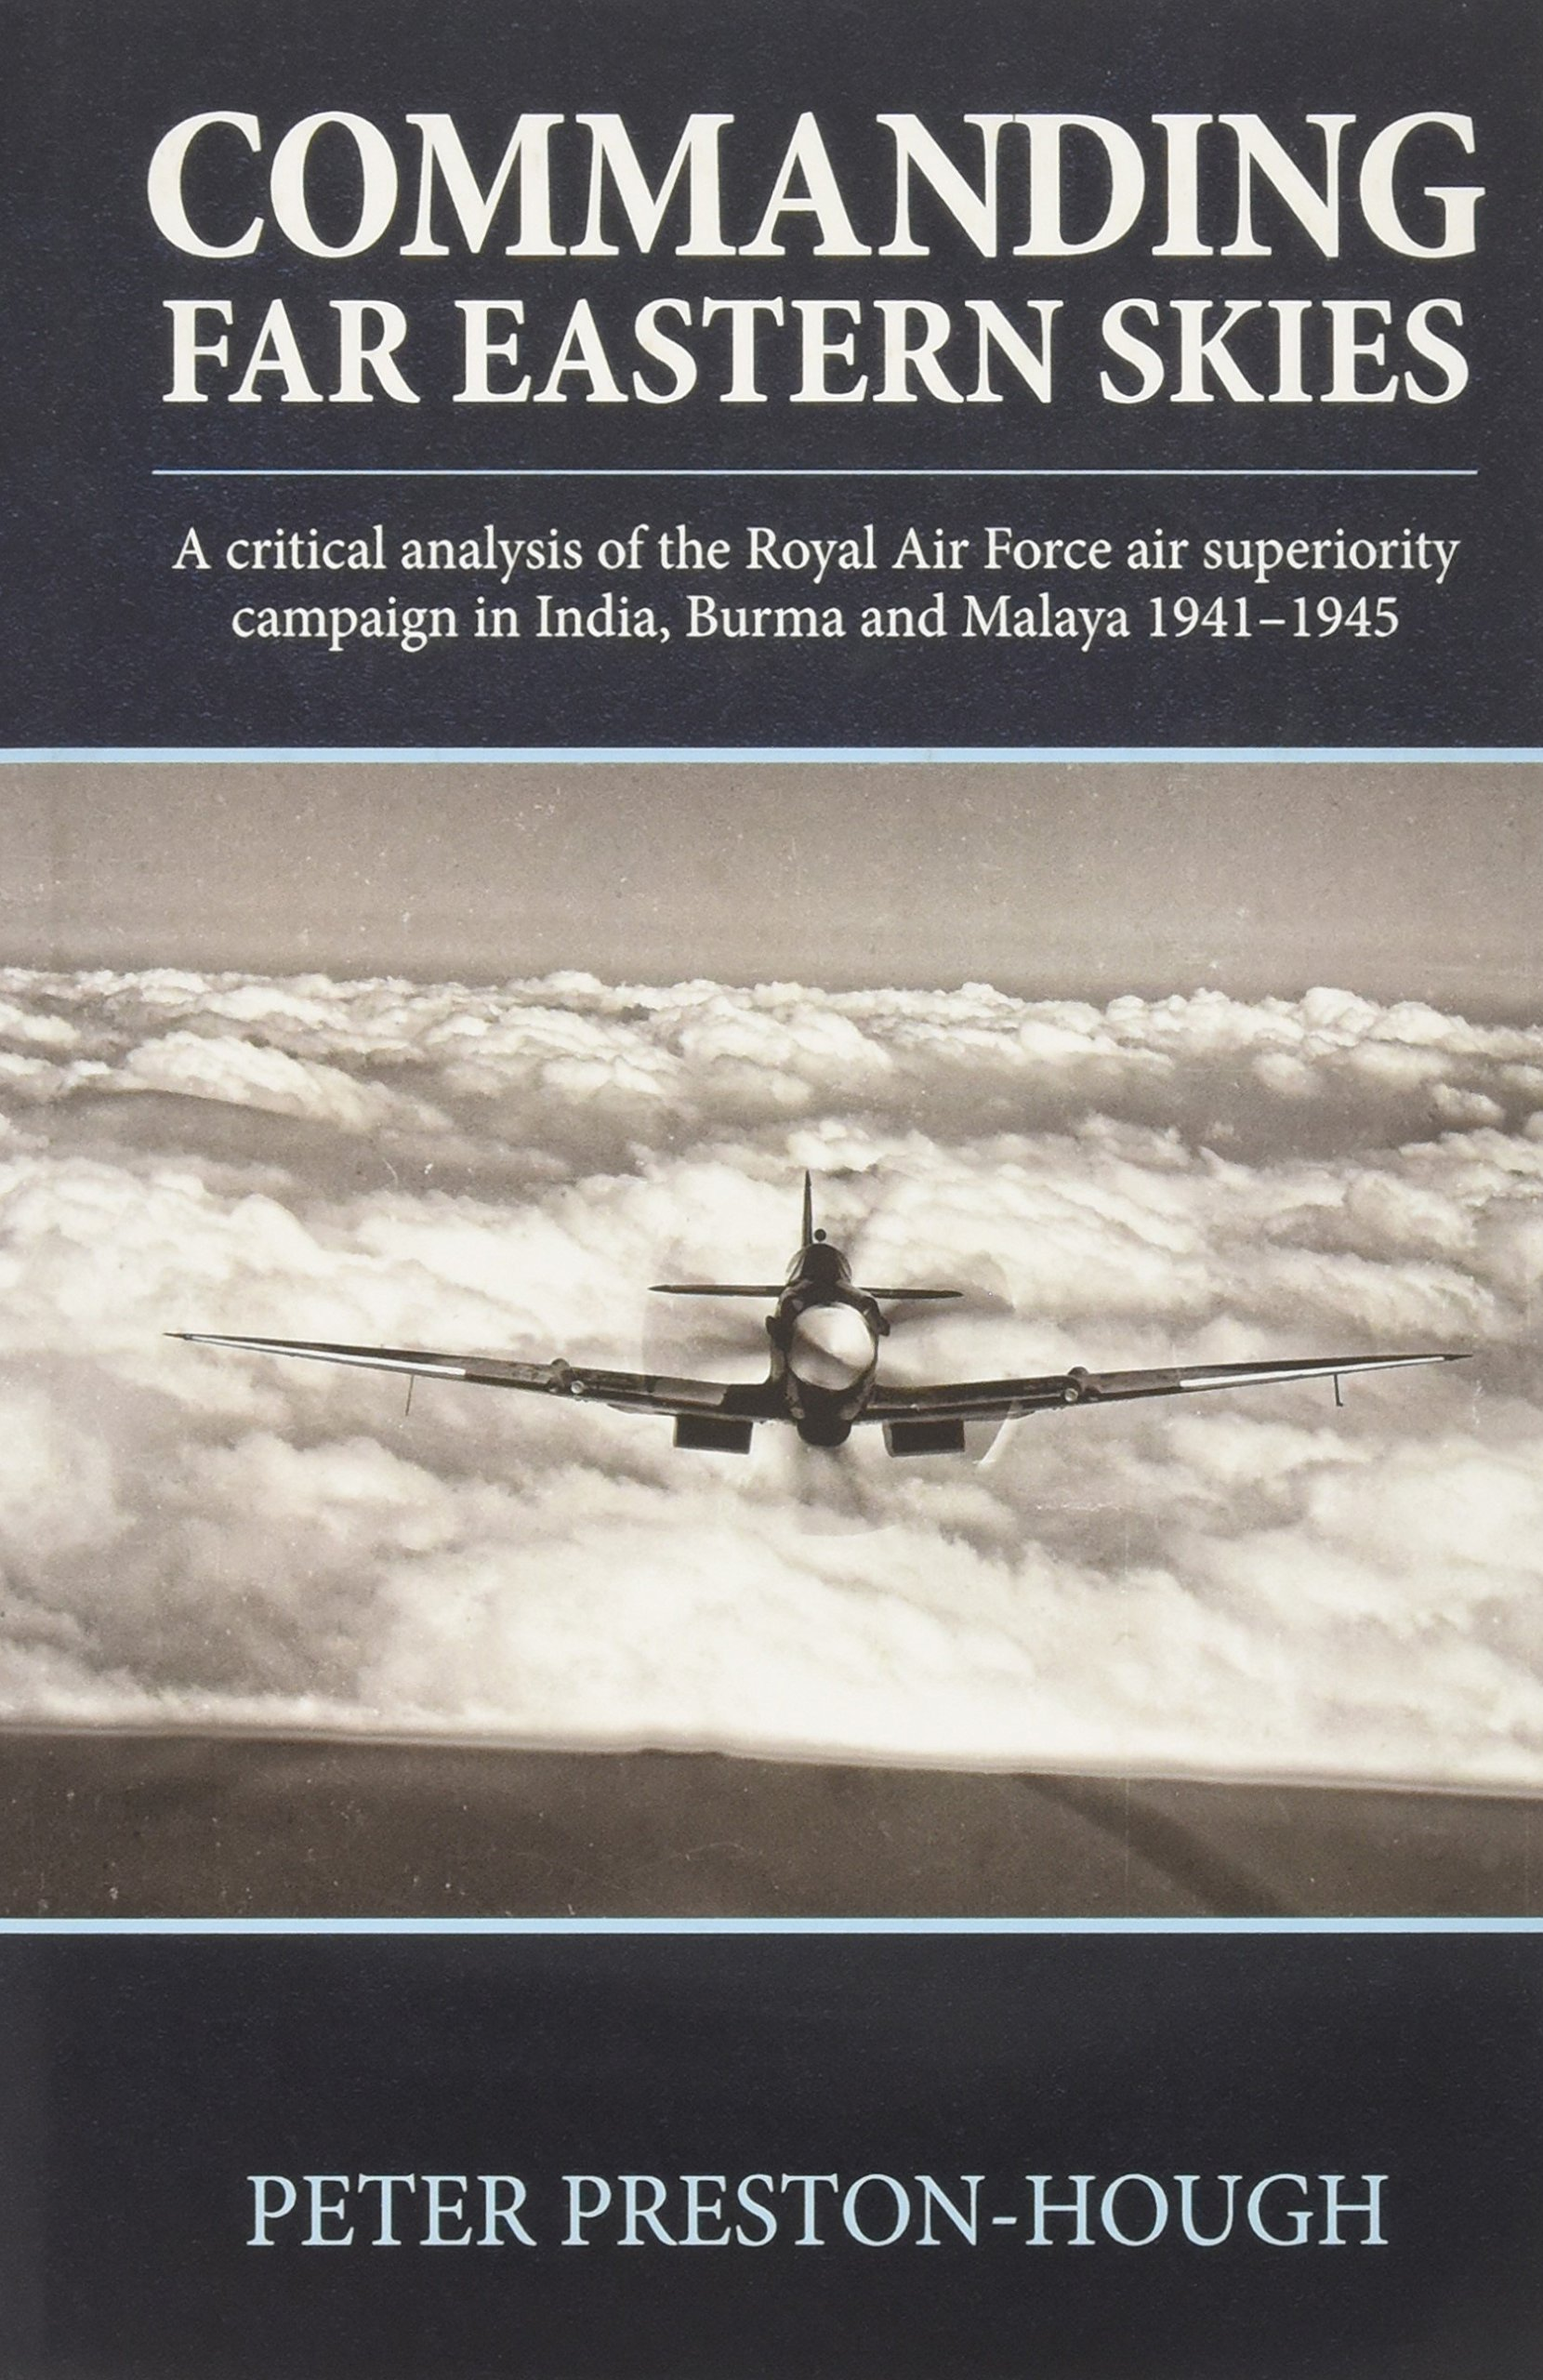 Commanding Far Eastern Skies: A Critical Analysis of the Royal Air Force Air Superiority Campaign in India, Burma and Malaya 1941–1945 (Wolverhampton Military Studies) PDF